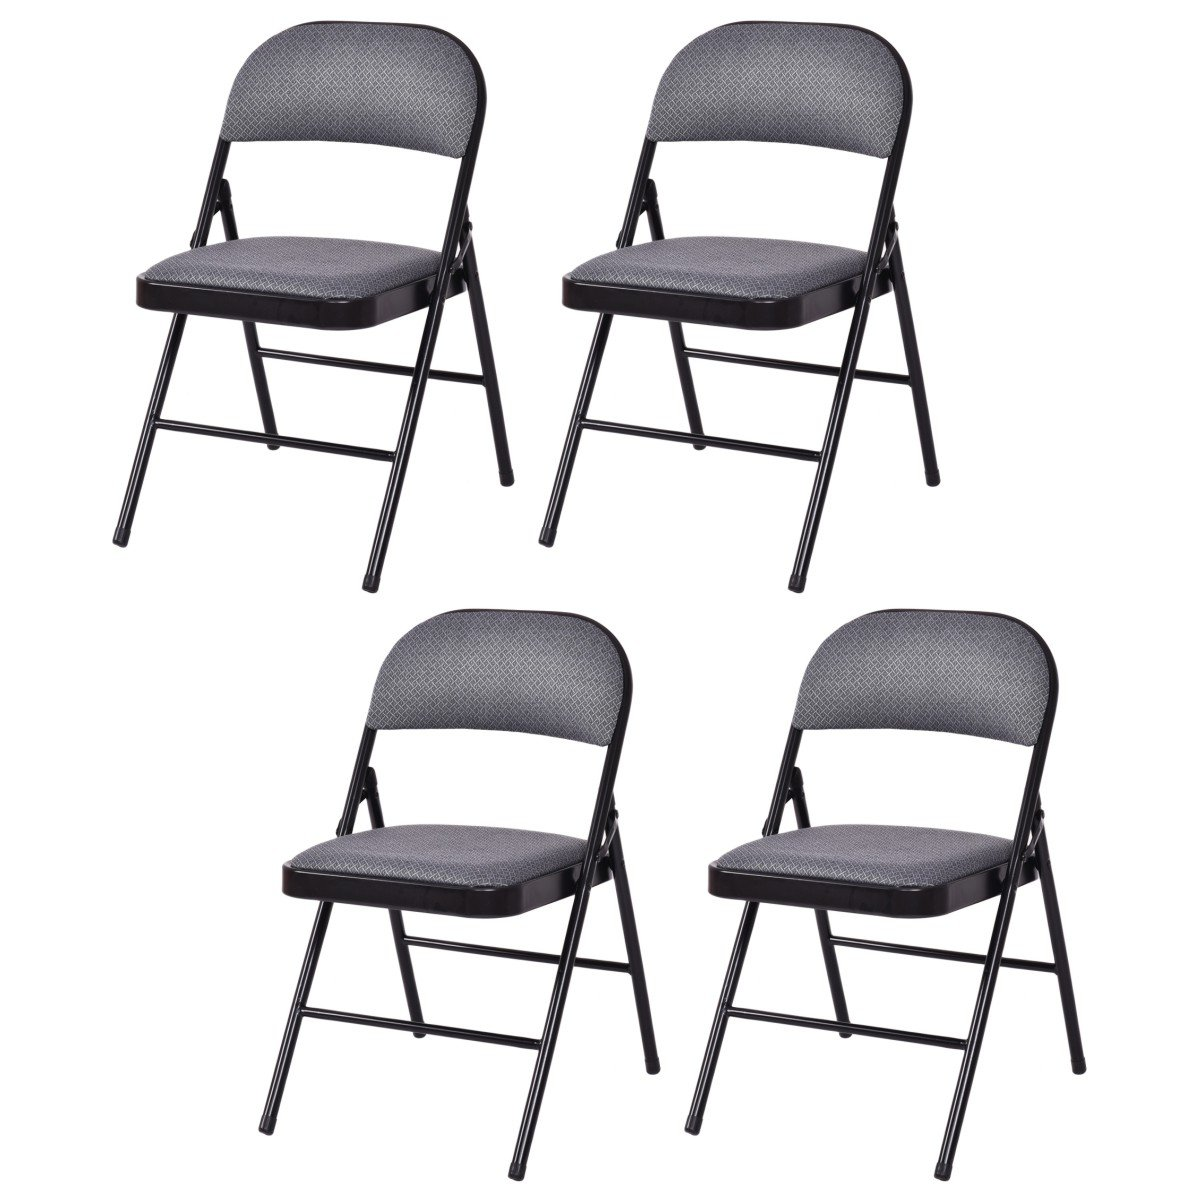 Giantex 4-Pack Folding Chairs with Metal Frame and Fabric Upholstered Padded Seat, Foldable Home Office Party Chair Set (Grey) by Giantex